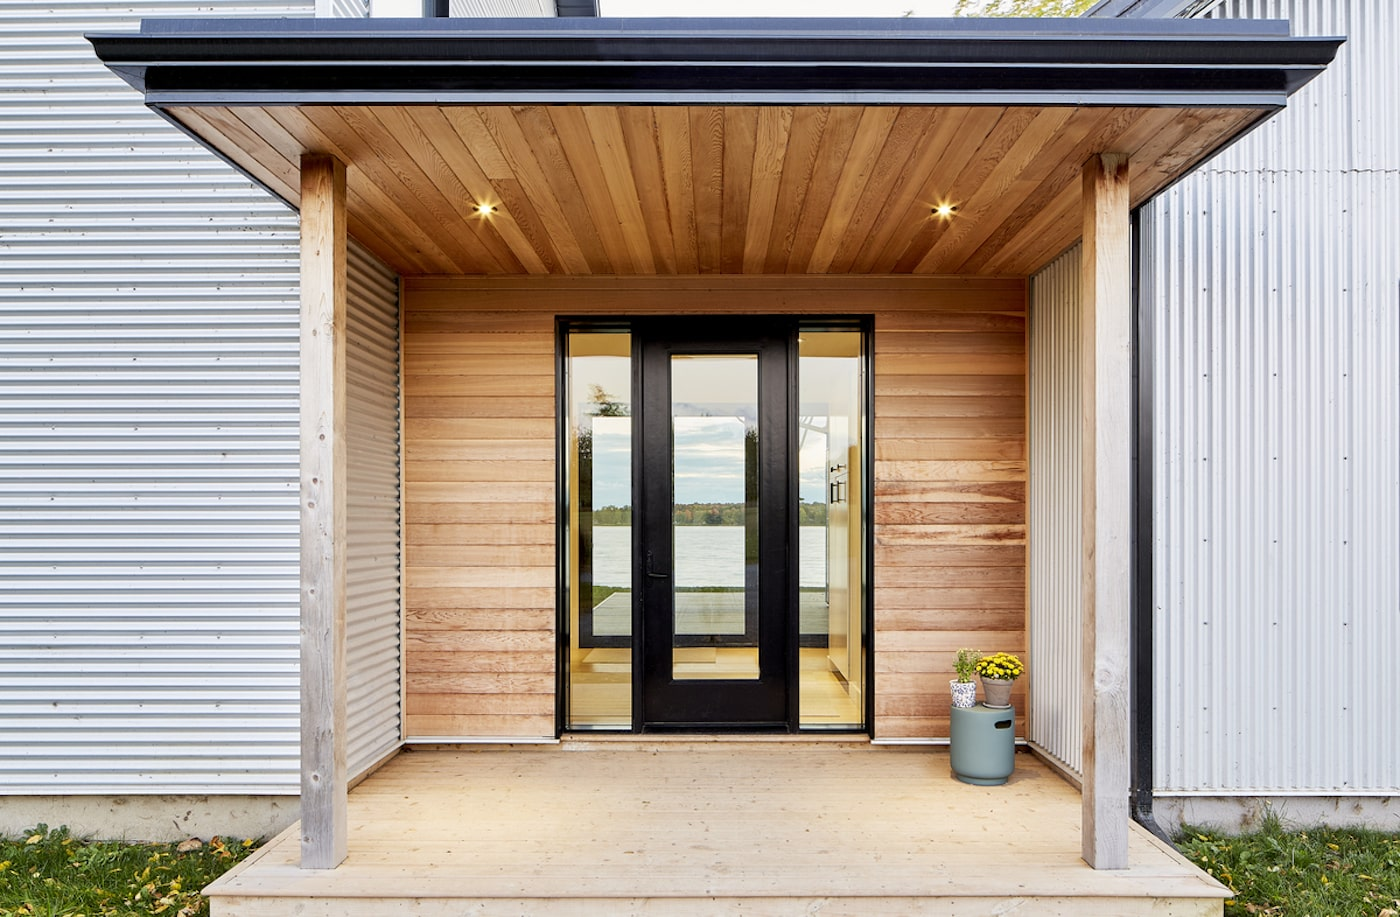 Timber clad wall of eco home